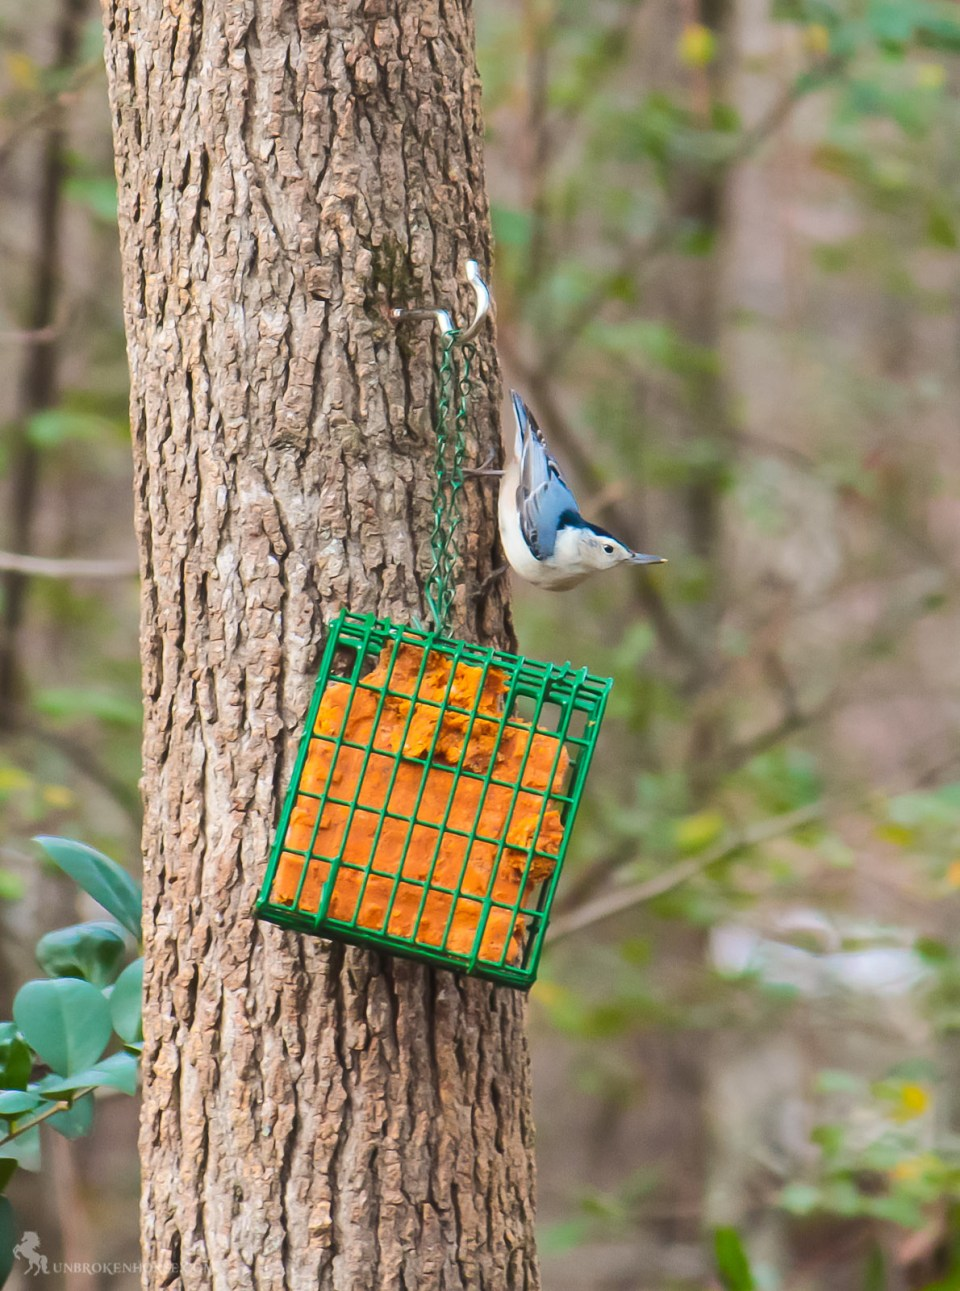 "A common feeder bird with clean black, gray, and white markings, White-breasted Nuthatches are active, agile little birds with an appetite for insects and large, meaty seeds. They get their common name from their habit of jamming large nuts and acorns into tree bark, then whacking them with their sharp bill to ""hatch"" out the seed from the inside. White-breasted Nuthatches may be small but their voices are loud, and often their insistent nasal yammering will lead you right to them."